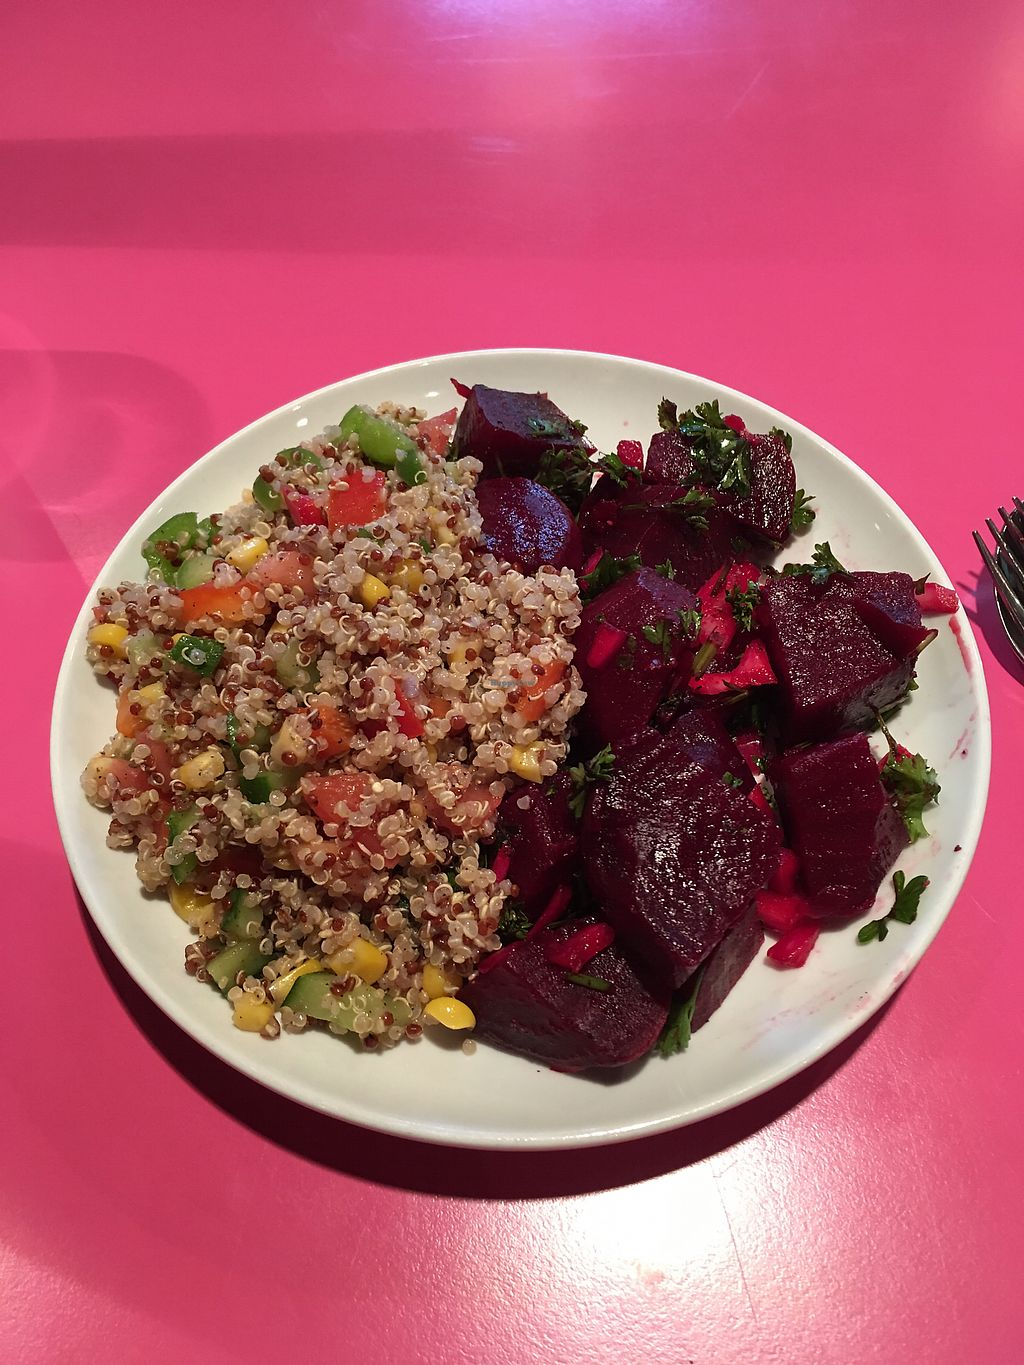 """Photo of Sweet Cherubim Restaurant and Bakery  by <a href=""""/members/profile/P%40ulie"""">P@ulie</a> <br/>quinoa and beetroot salads <br/> July 11, 2017  - <a href='/contact/abuse/image/1272/279011'>Report</a>"""